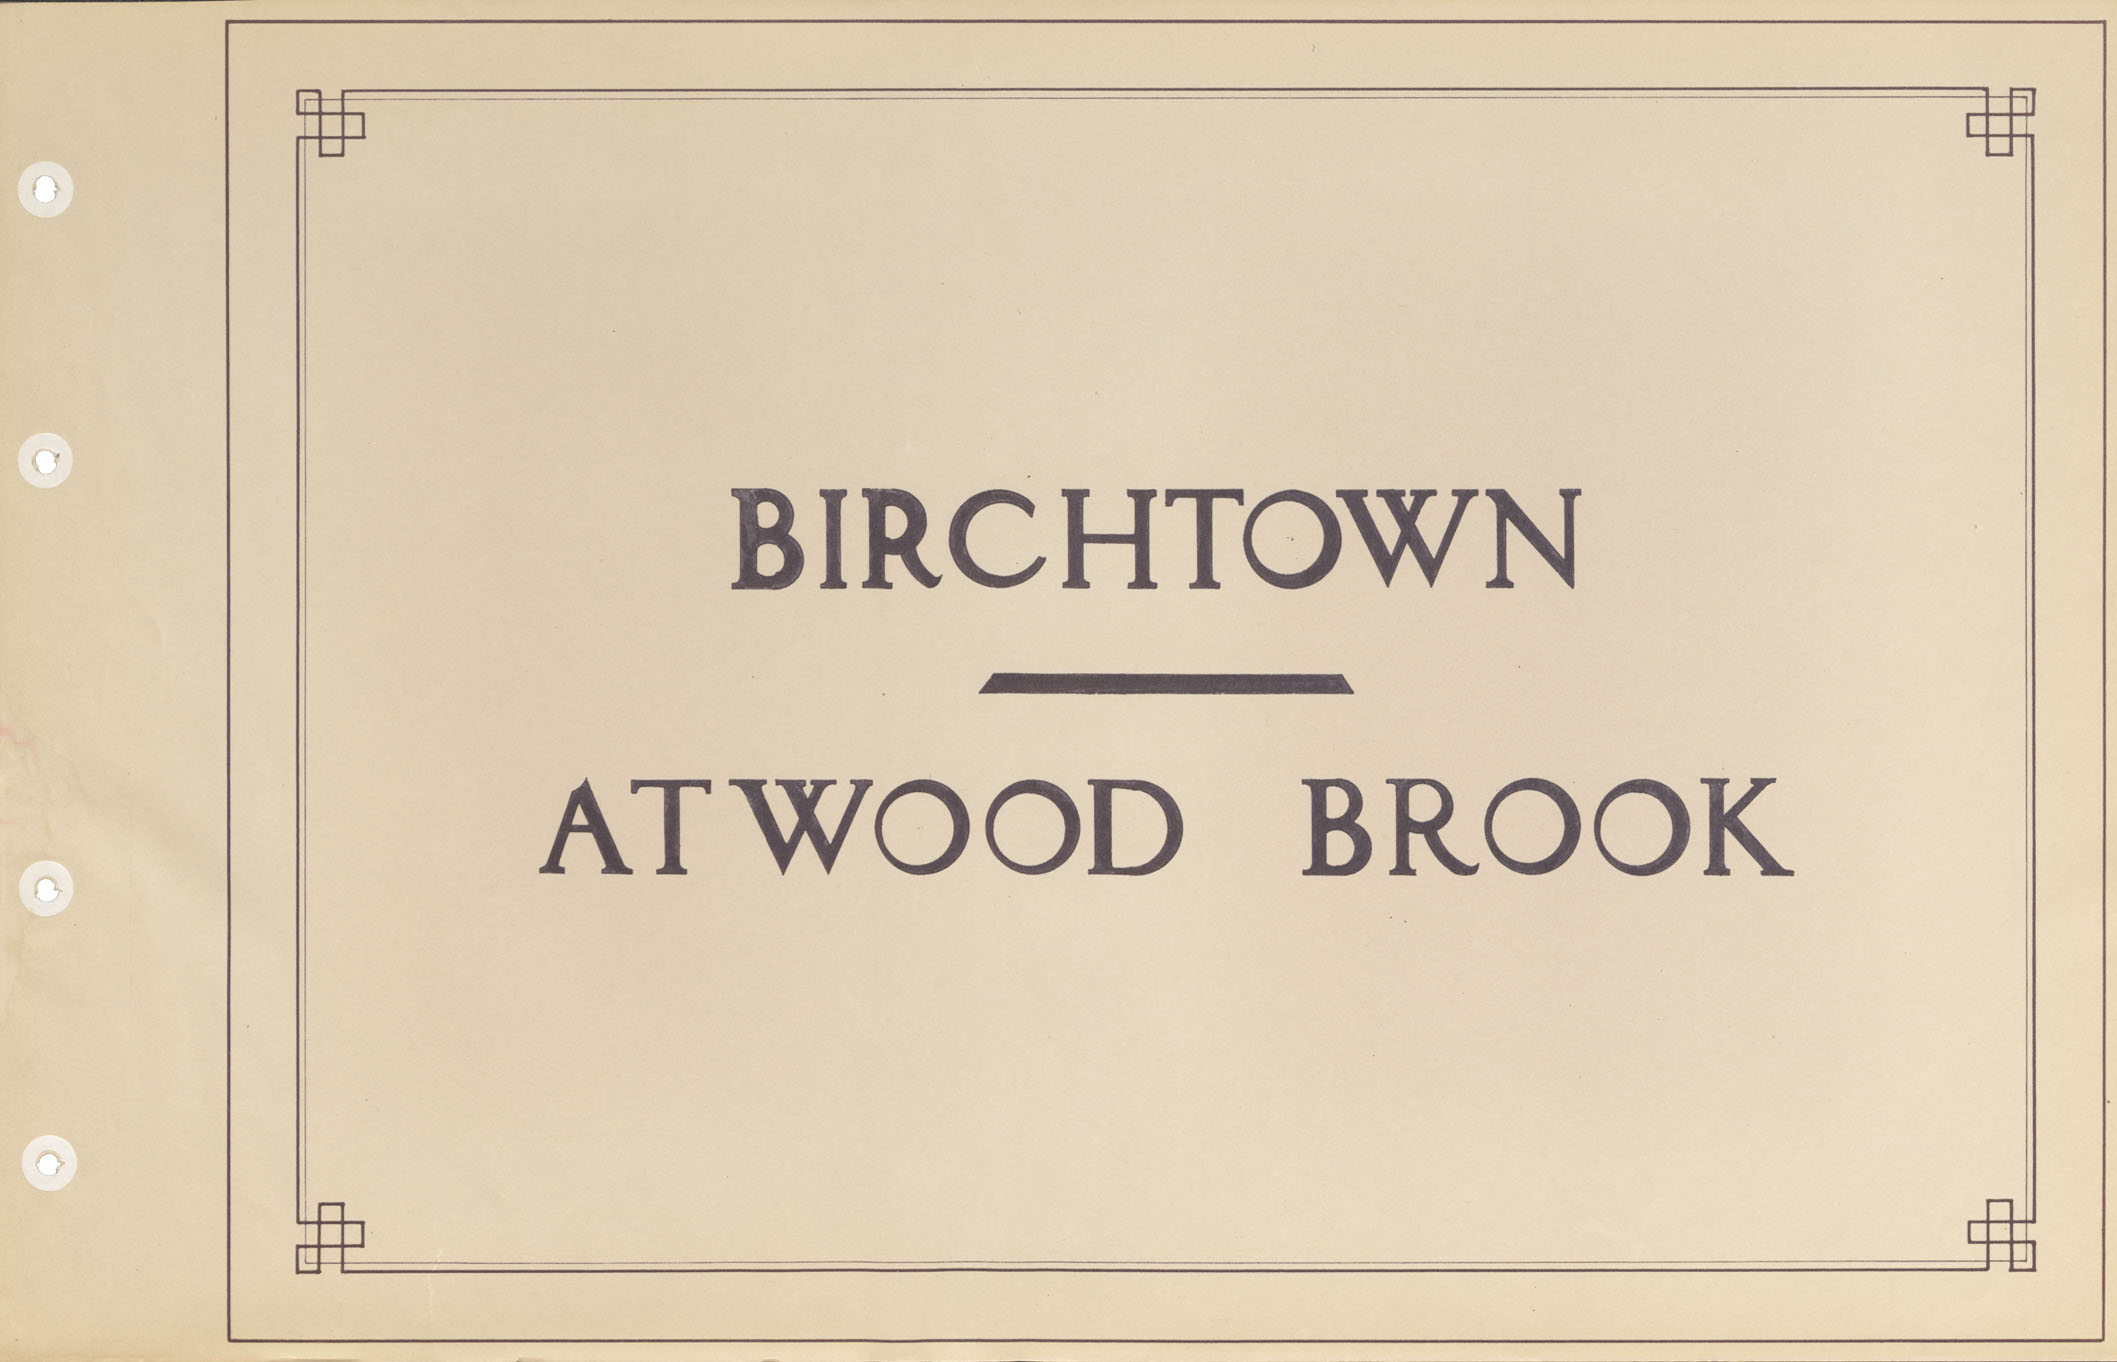 Highways : Birchtown - Atwood Brook